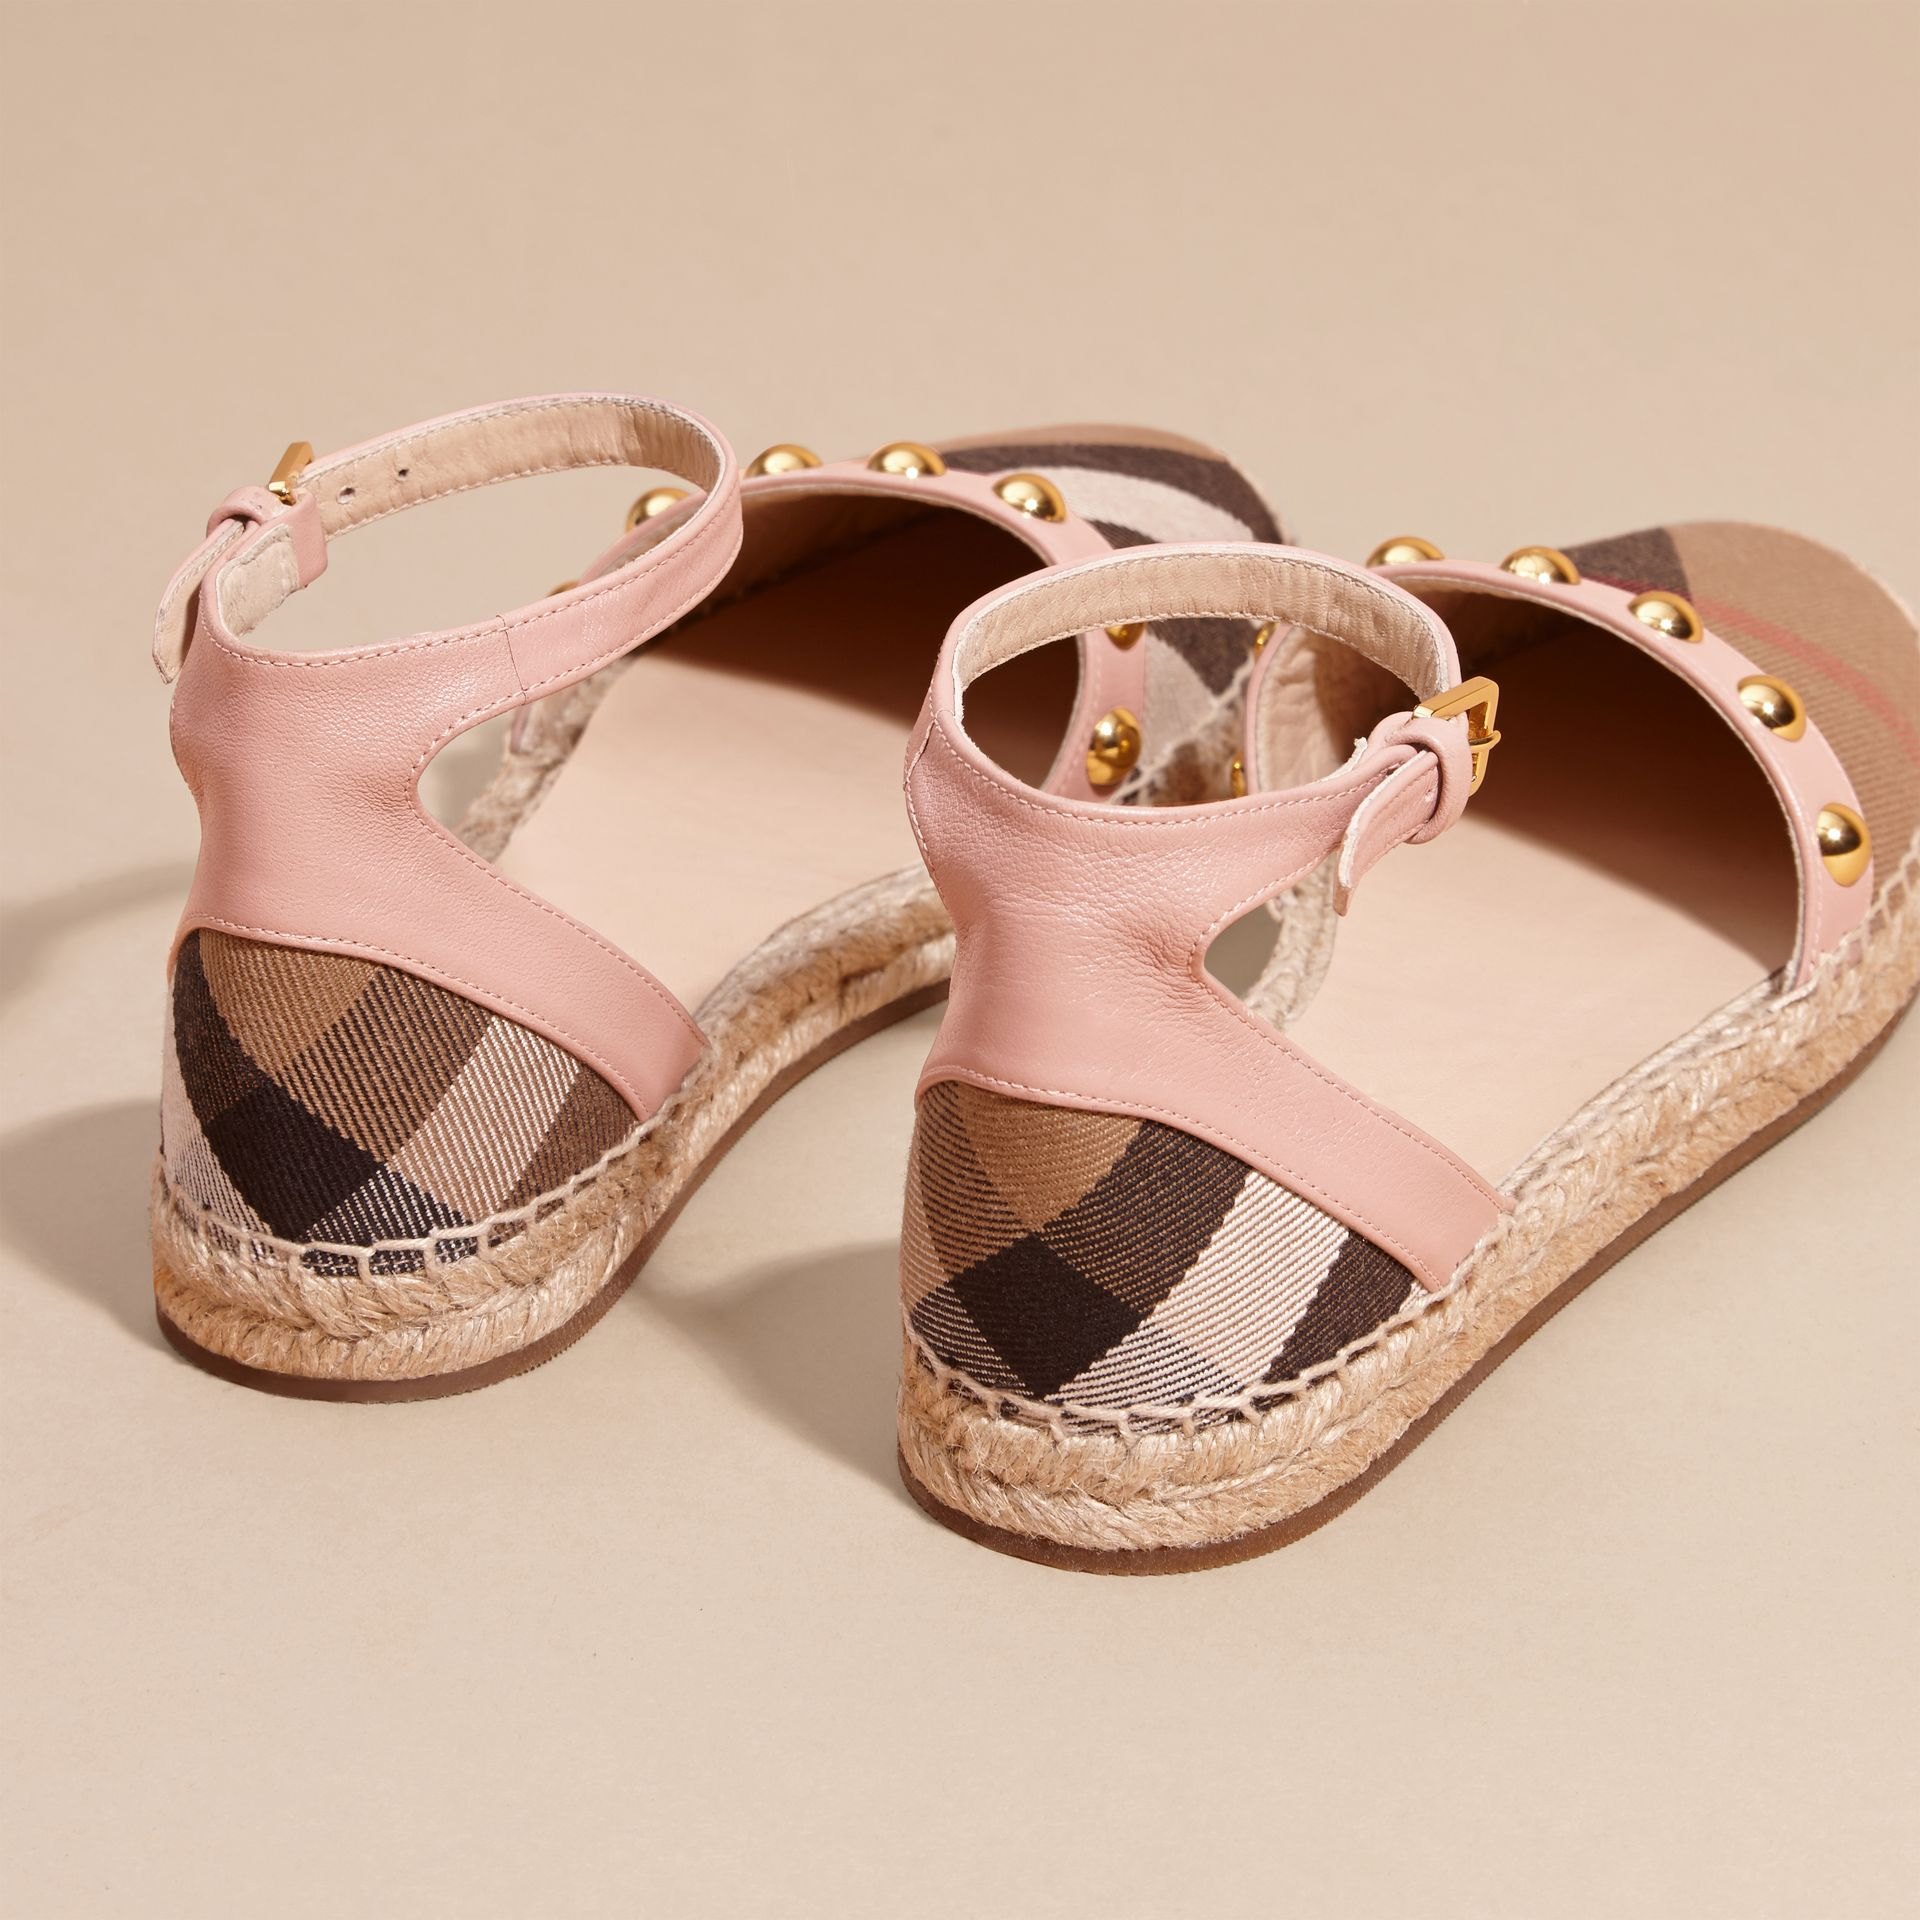 Nude blush Studded Leather and House Check Espadrille Sandals Nude Blush - gallery image 4